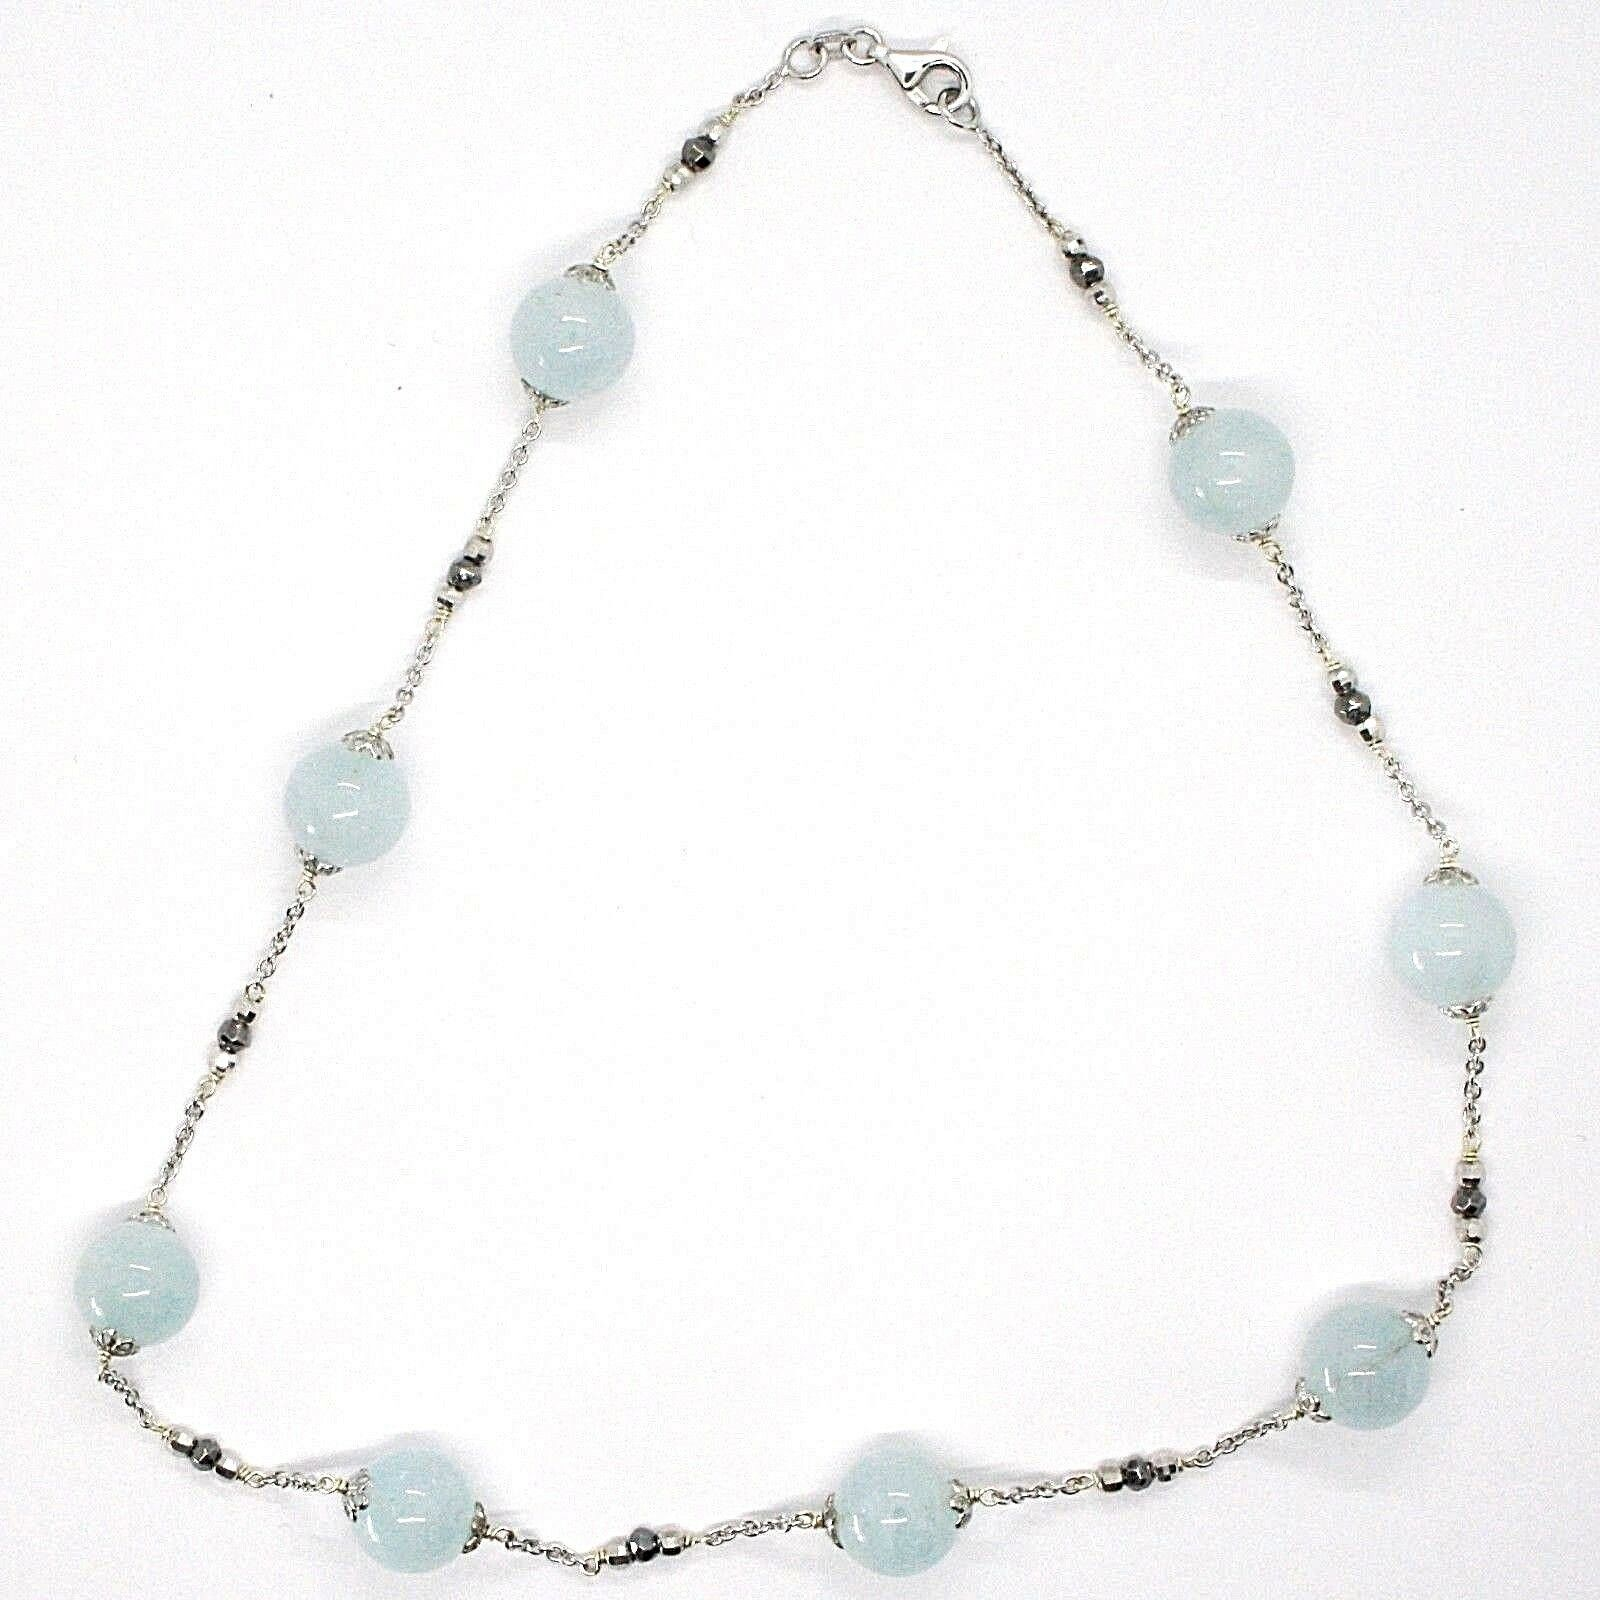 Necklace Silver 925, Aquamarine Spheres, Pyrite Faceted, Chain Rolo '